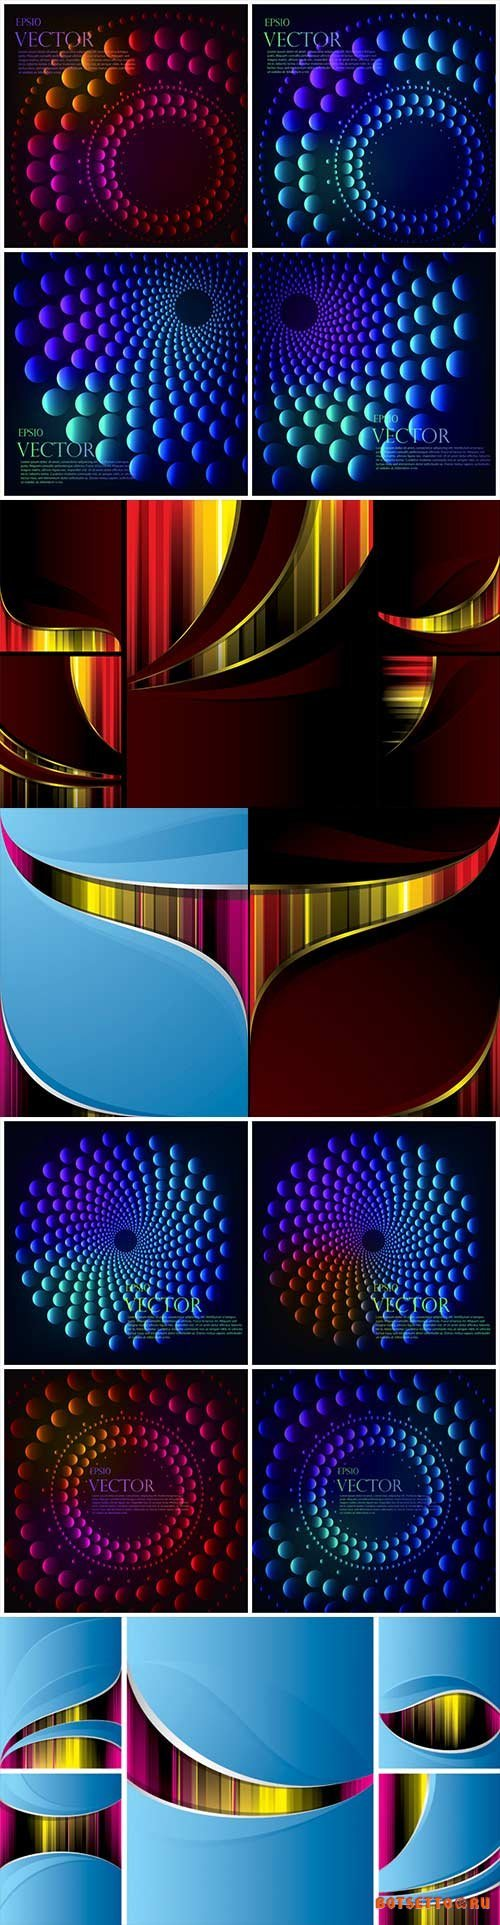 Bright colorful abstract backgrounds vector - 91